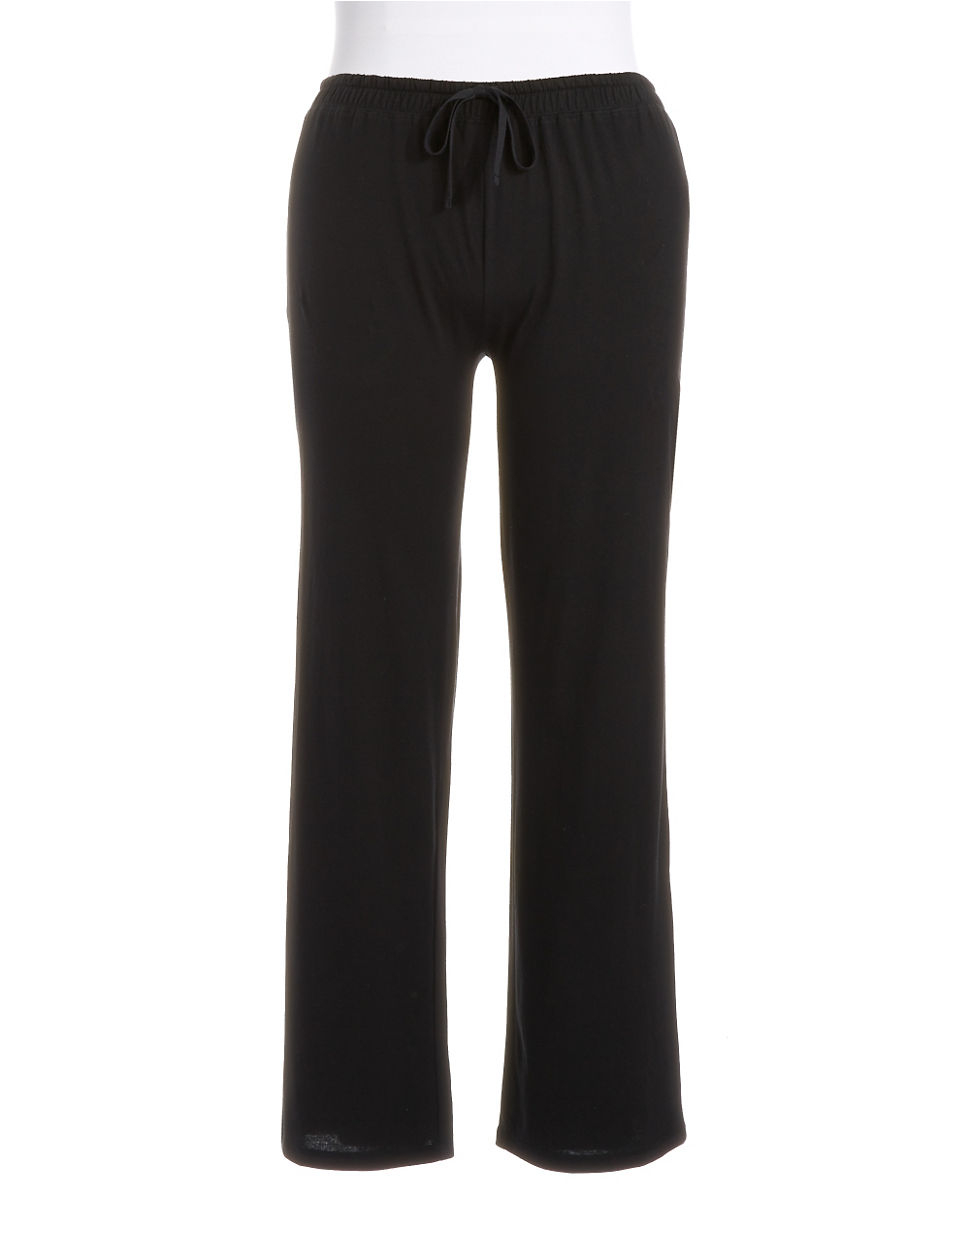 Lord Amp Taylor Plus Pima Cotton Lounge Pants In Black Lyst